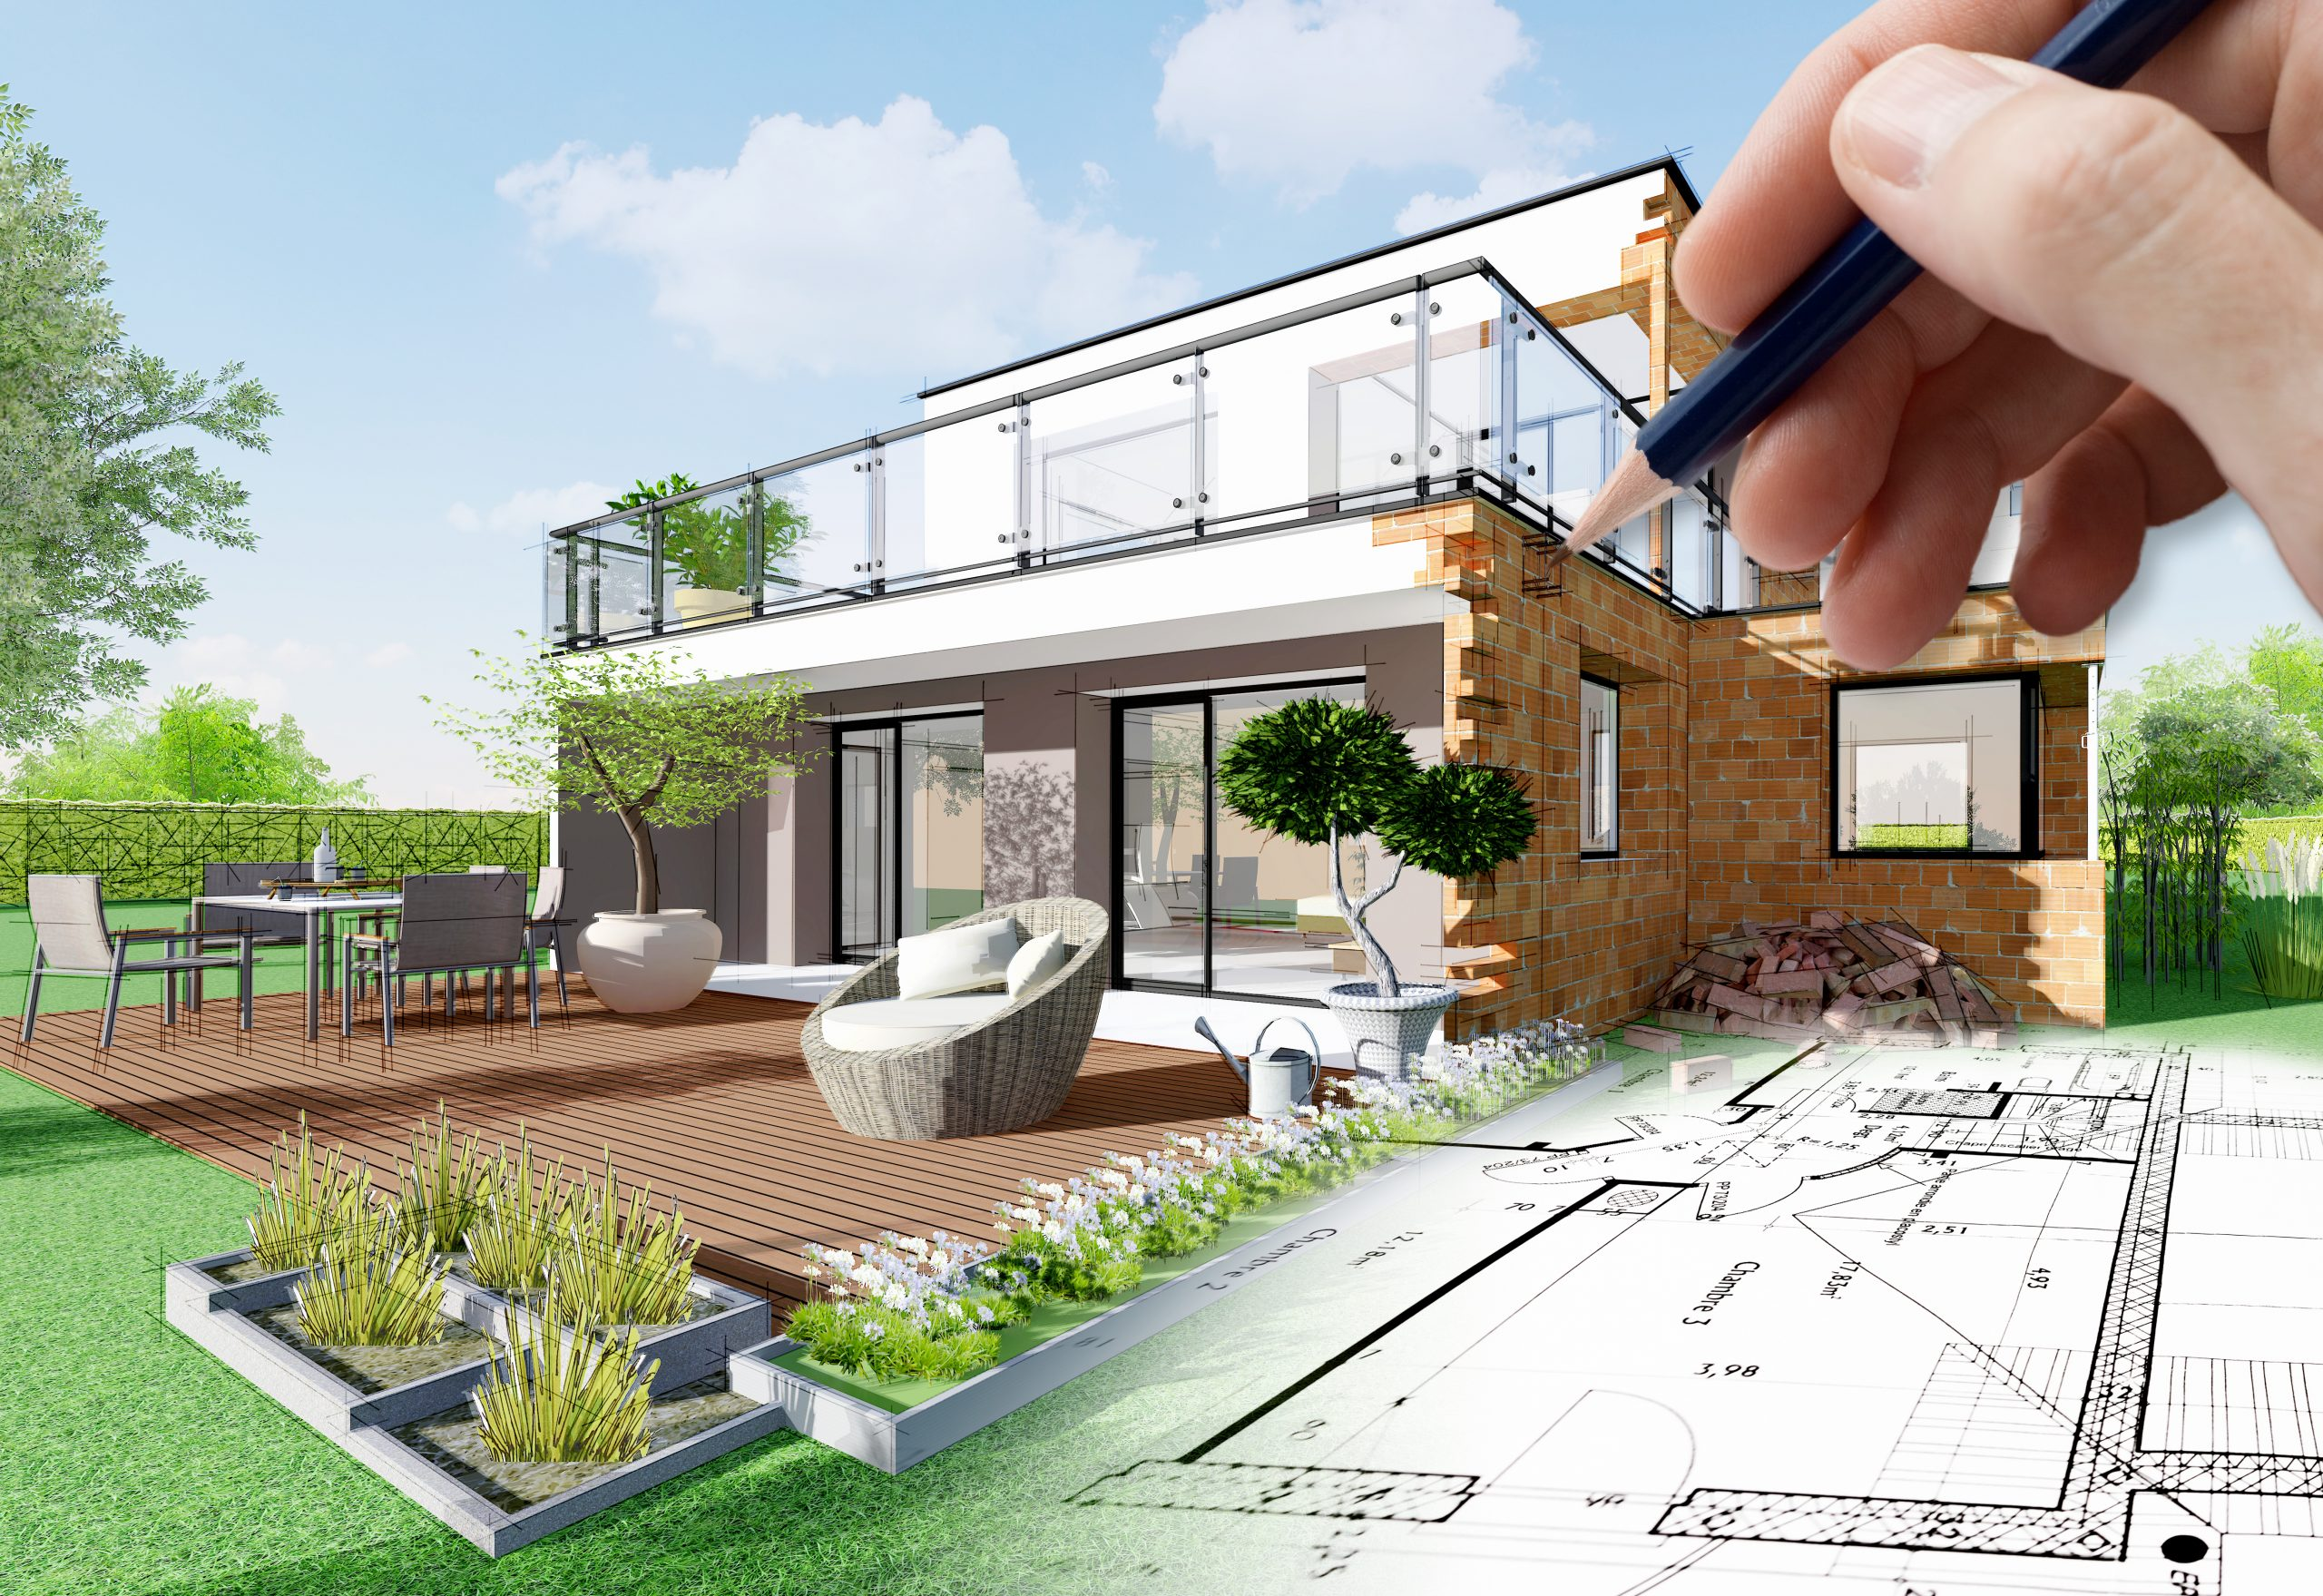 Do You Want to Make Your House Look Like a Villa?